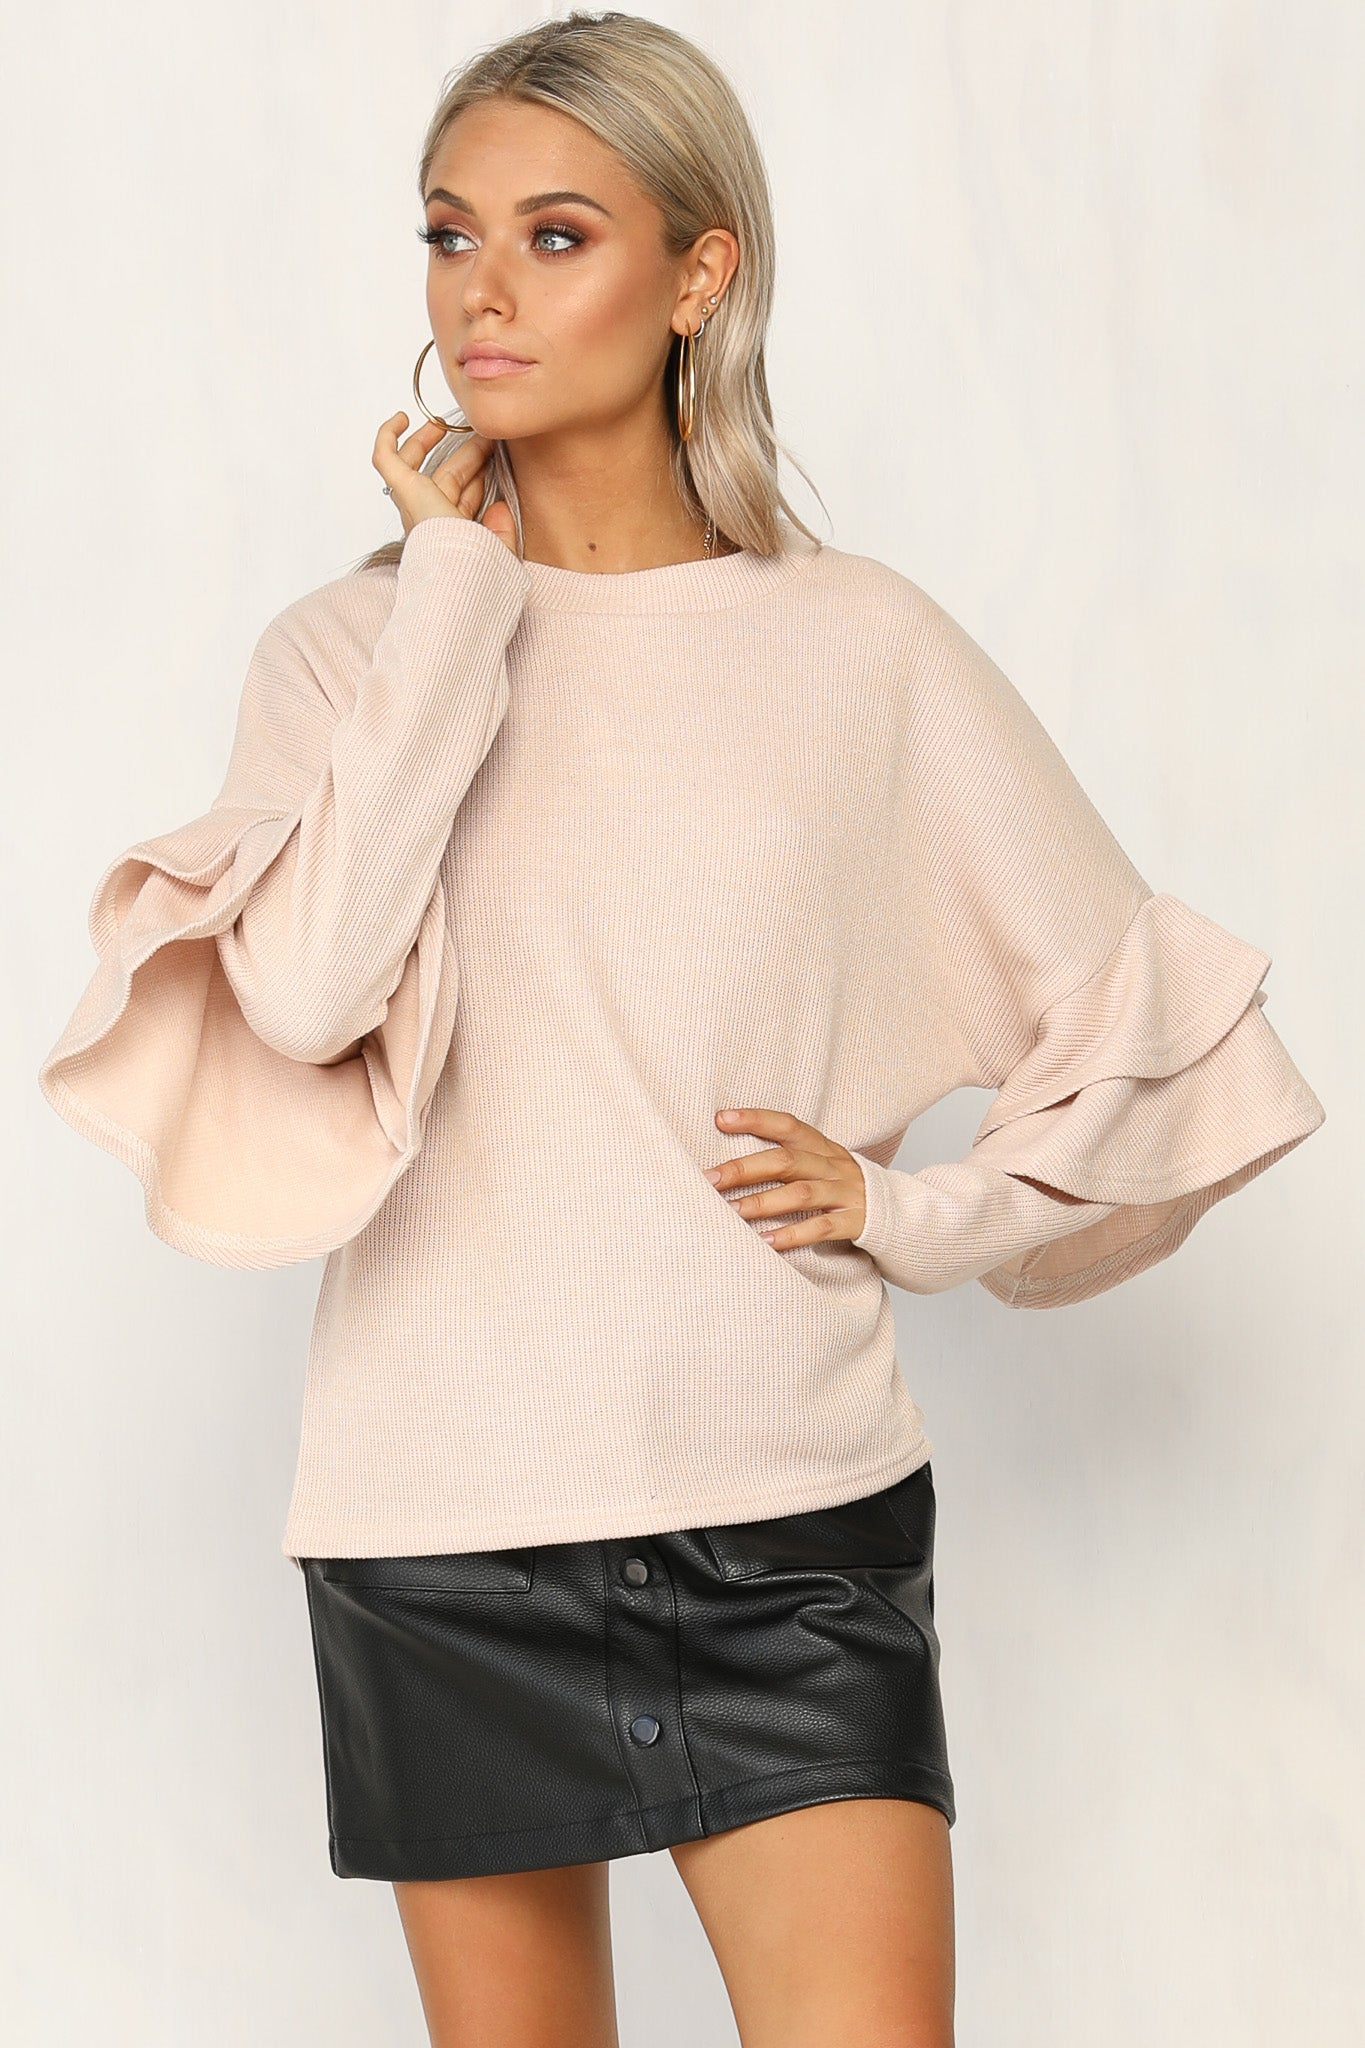 Never Mind Jumper (Beige)